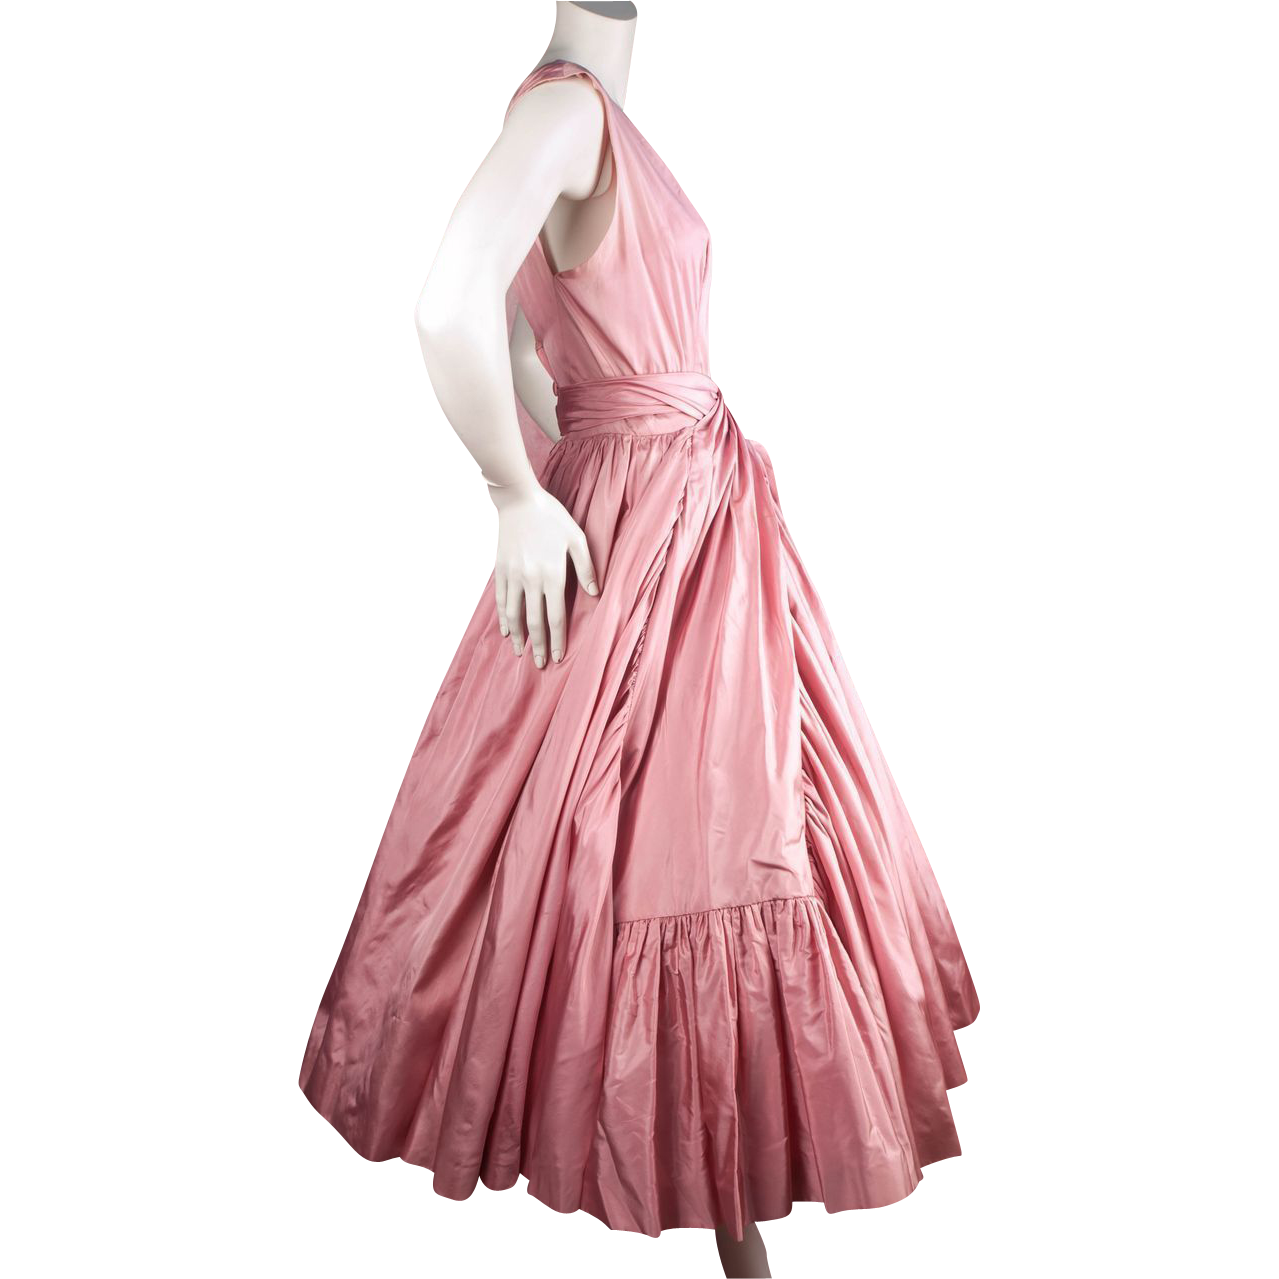 Important Early 1950's Hubert de Givenchy Pink Satin Dress